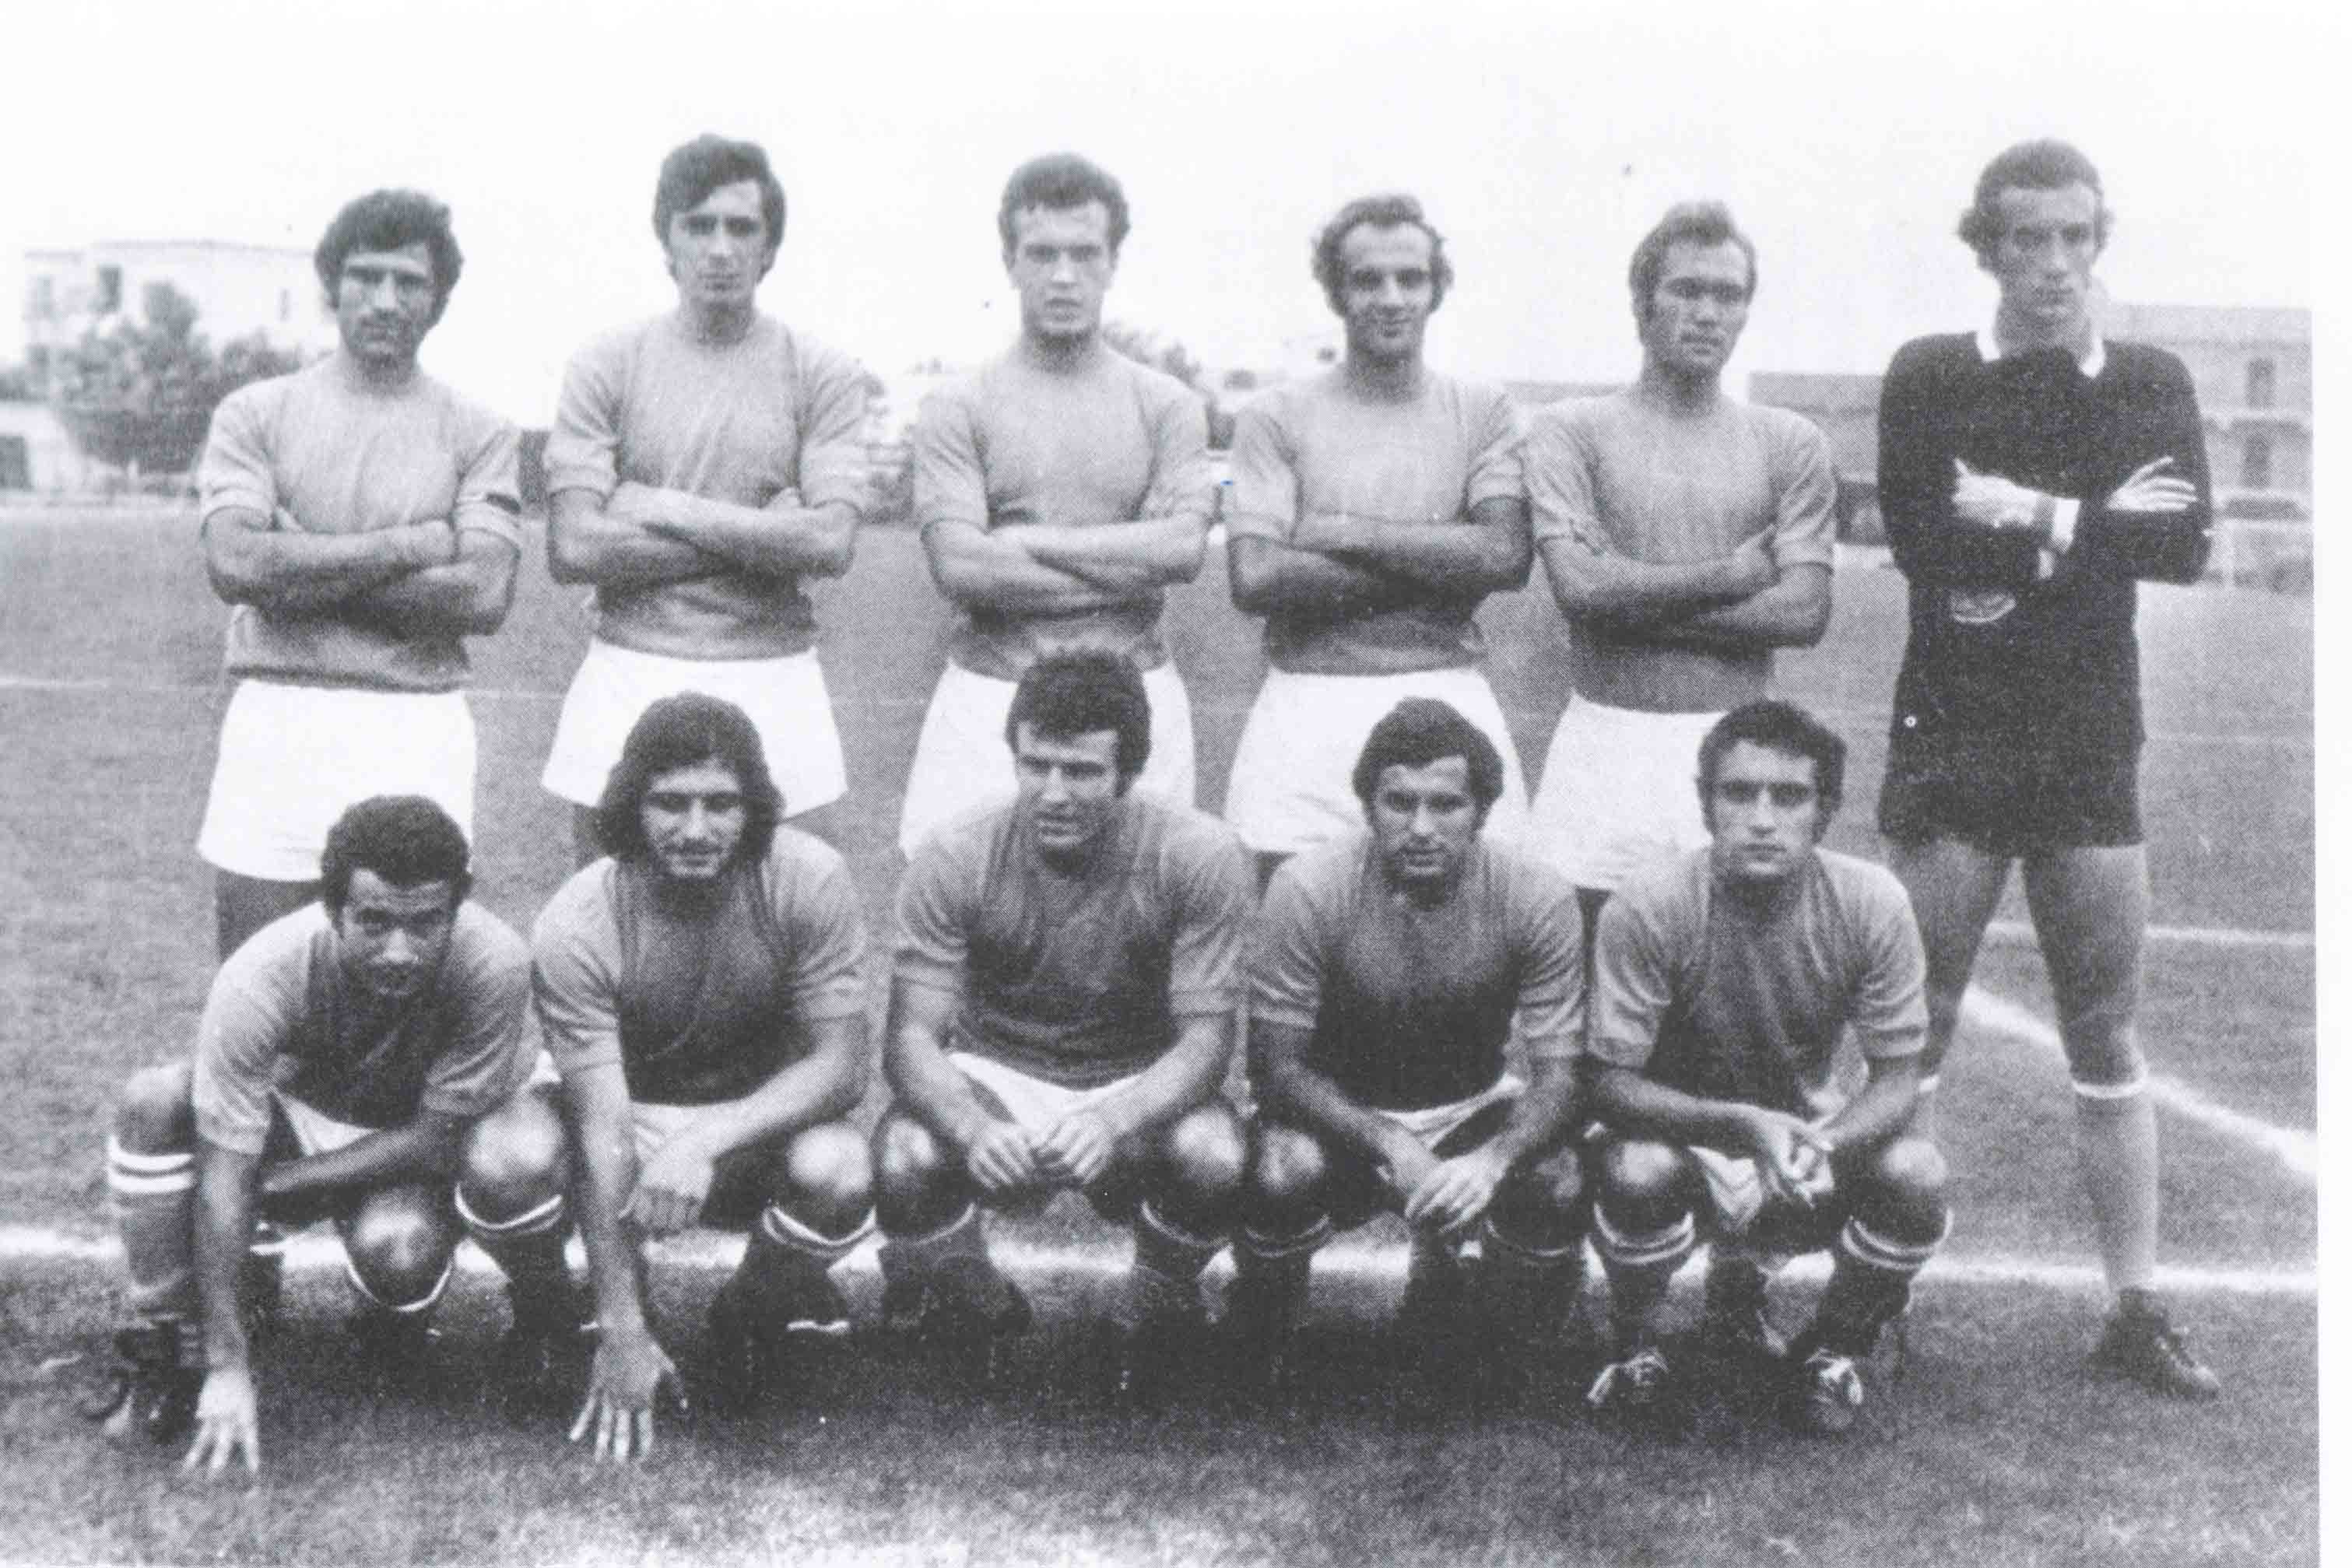 1973-74 - Foot Ball Club Matera - Serie C